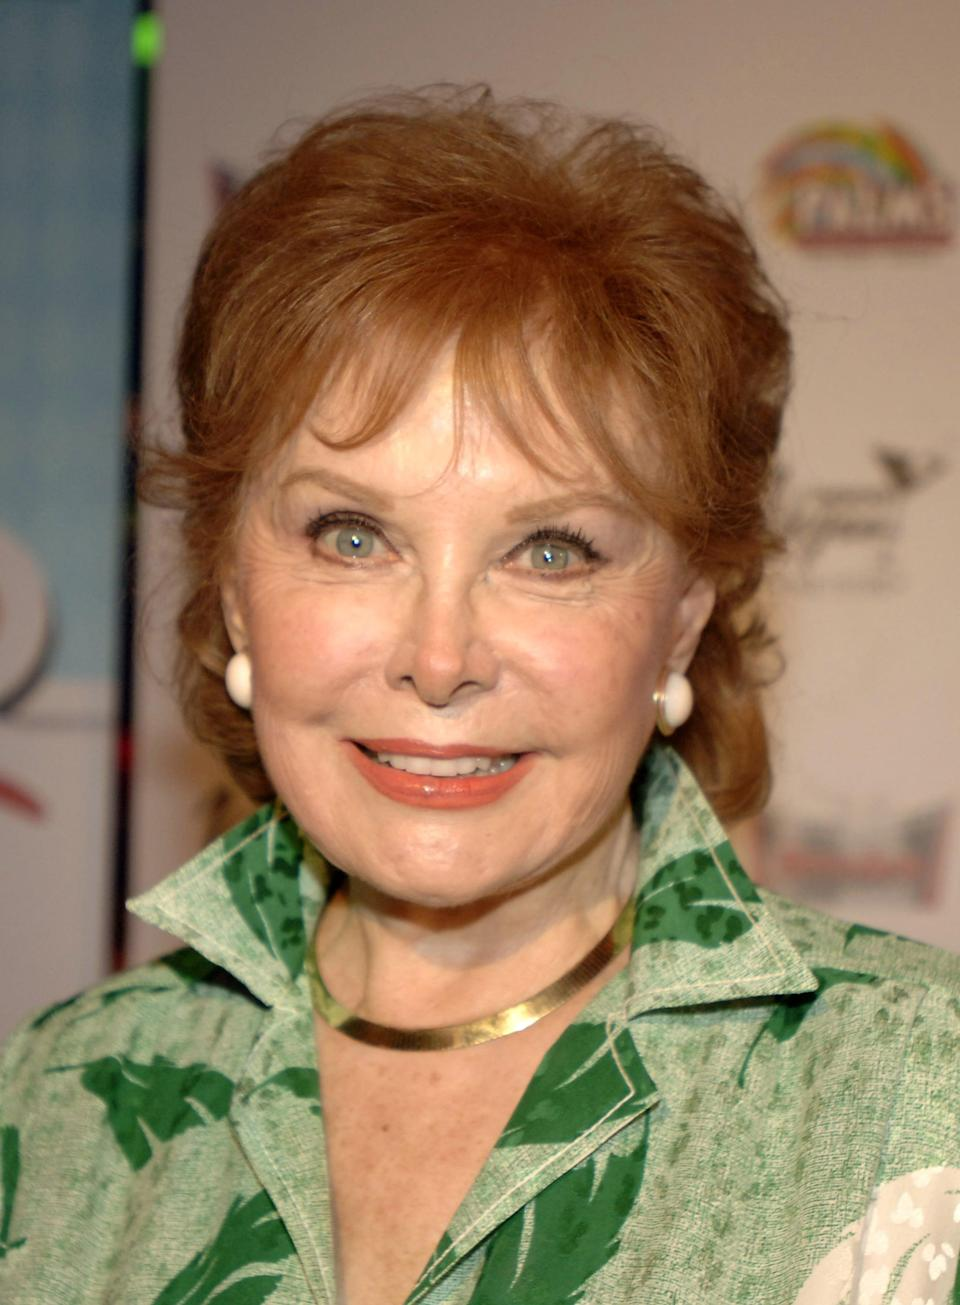 """<p>The <strong>Spellbound</strong> actress, known as the """"Queen of Technicolor,"""" <a href=""""https://www.hollywoodreporter.com/news/rhonda-fleming-dead-star-big-912522"""" class=""""link rapid-noclick-resp"""" rel=""""nofollow noopener"""" target=""""_blank"""" data-ylk=""""slk:died at age 97 in October"""">died at age 97 in October</a>.</p>"""